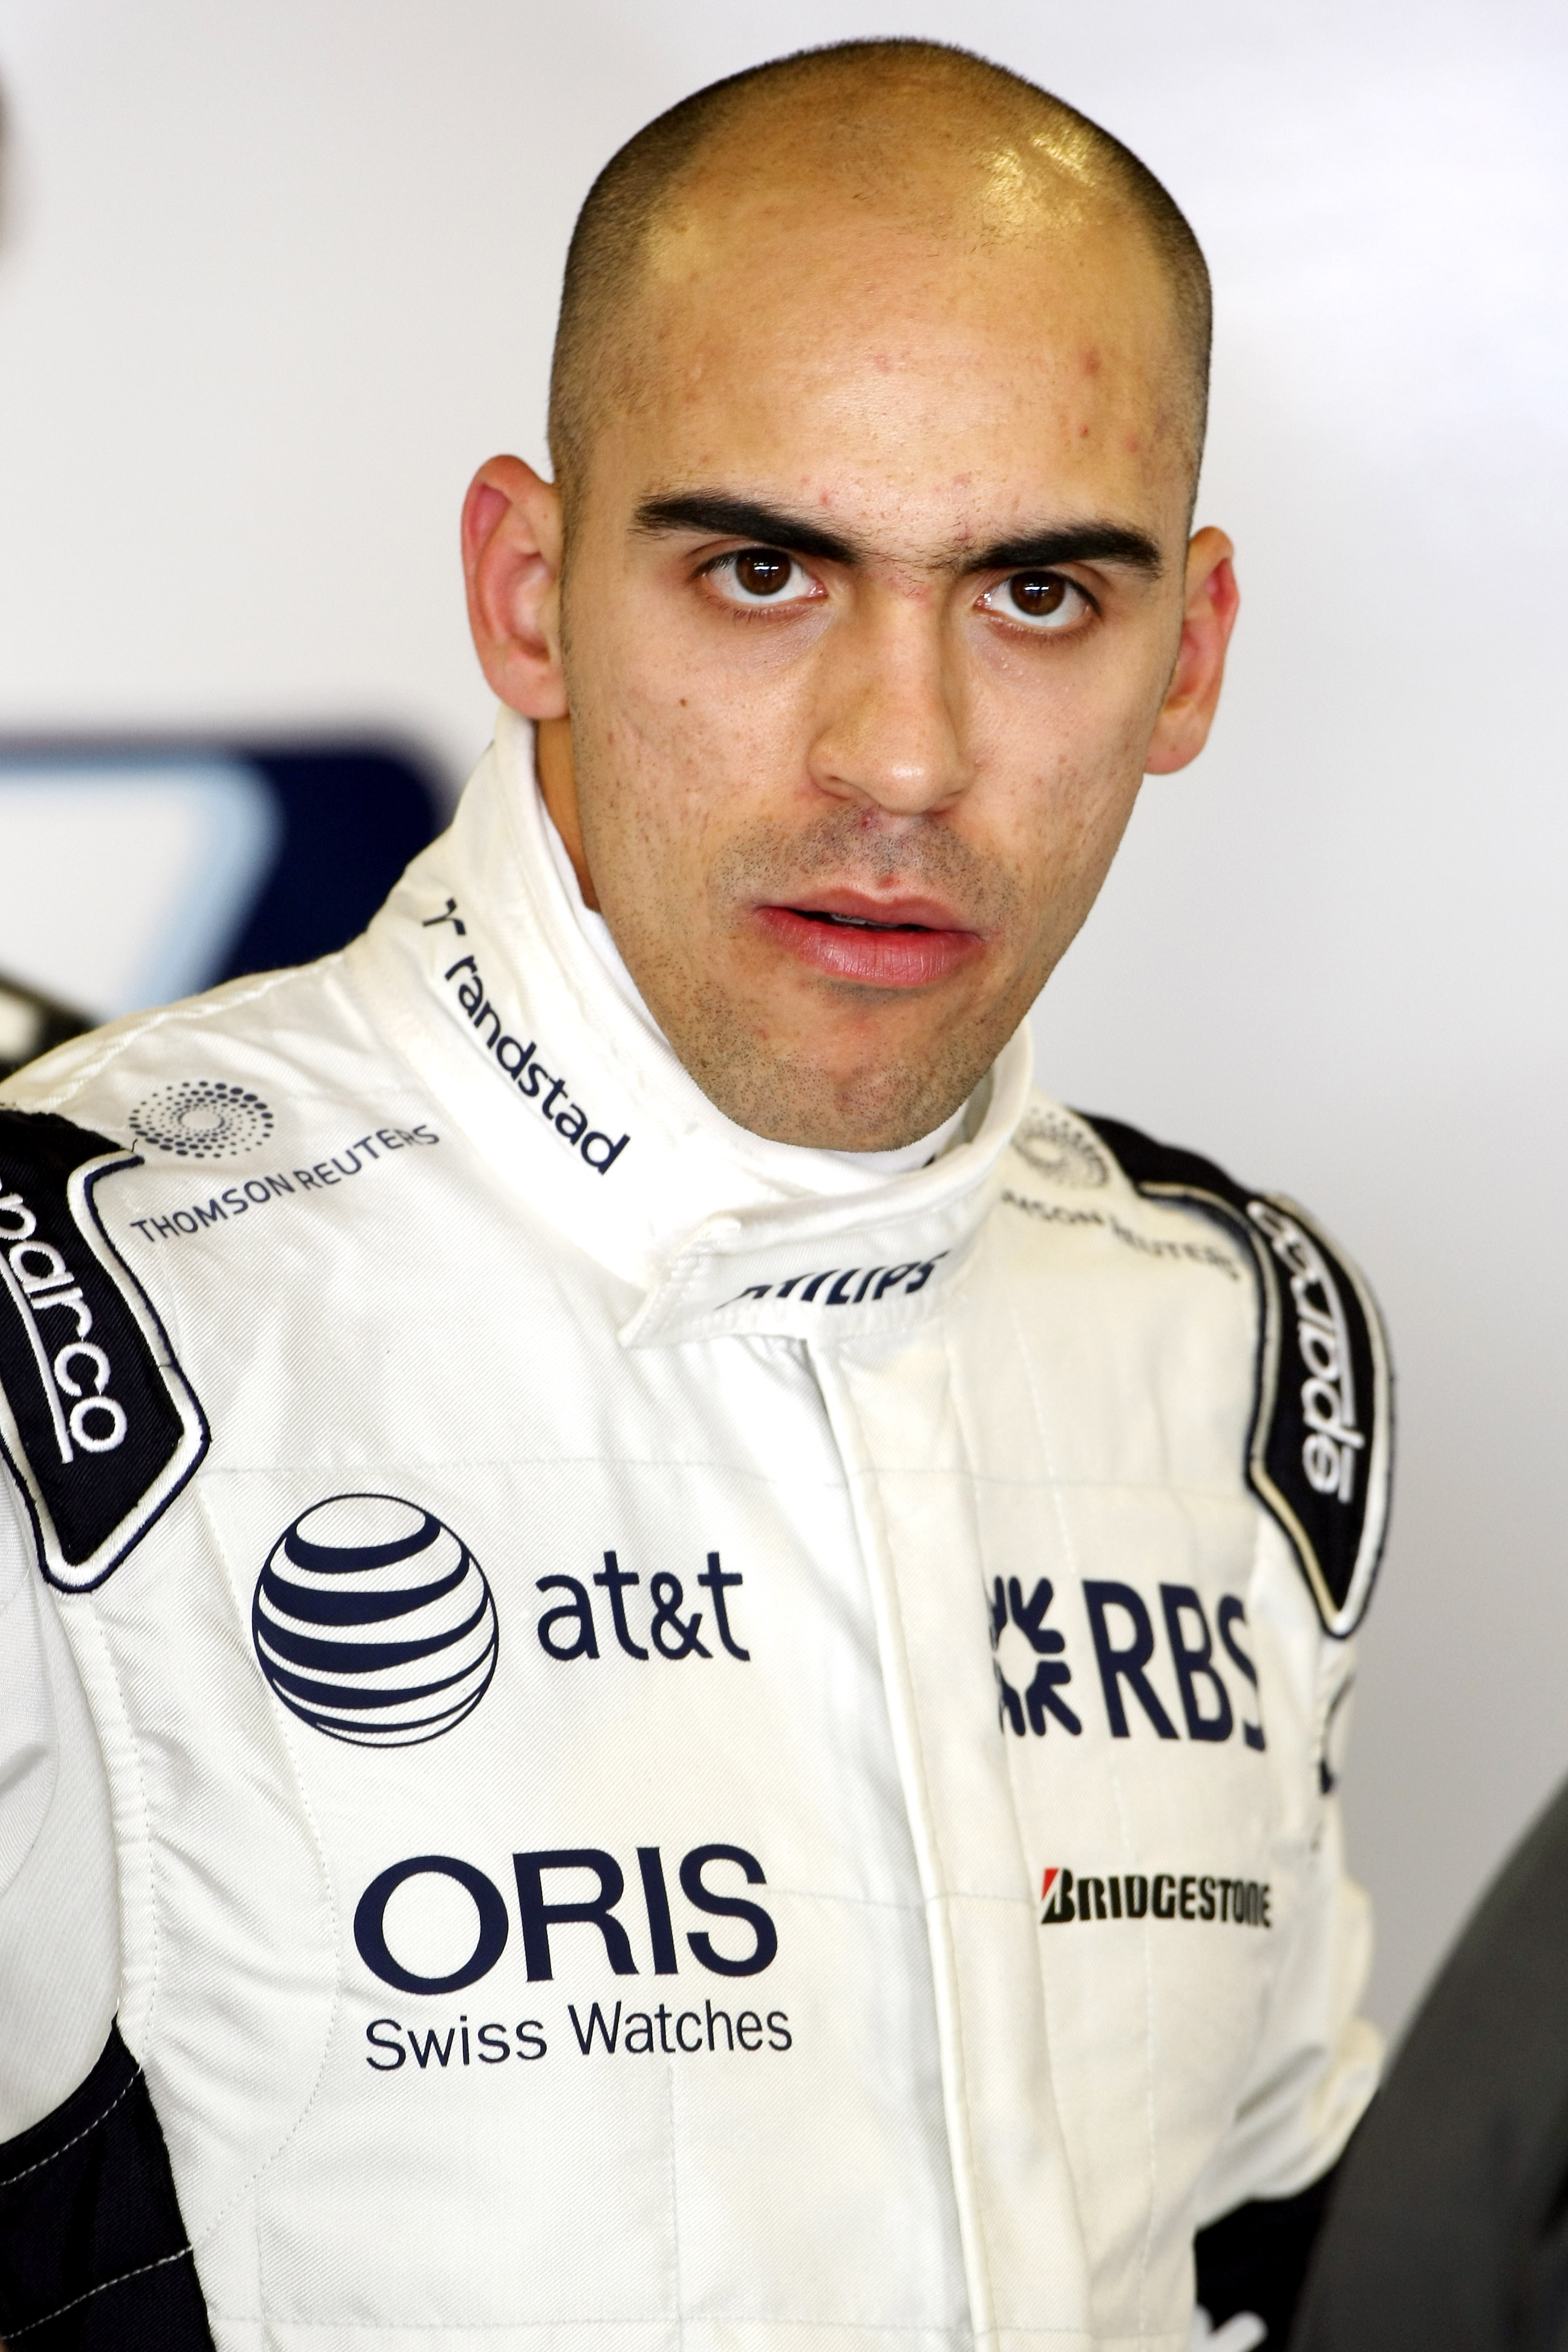 ABU DHABI, UNITED ARAB EMIRATES - NOVEMBER 17:  Pastor Maldonado of Venezuala and Williams F1 Team prepares to go out on track during the Young Driver Testing at the Yas Marina Circuit on November 17, 2010 in Abu Dhabi, United Arab Emirates.  (Photo by An